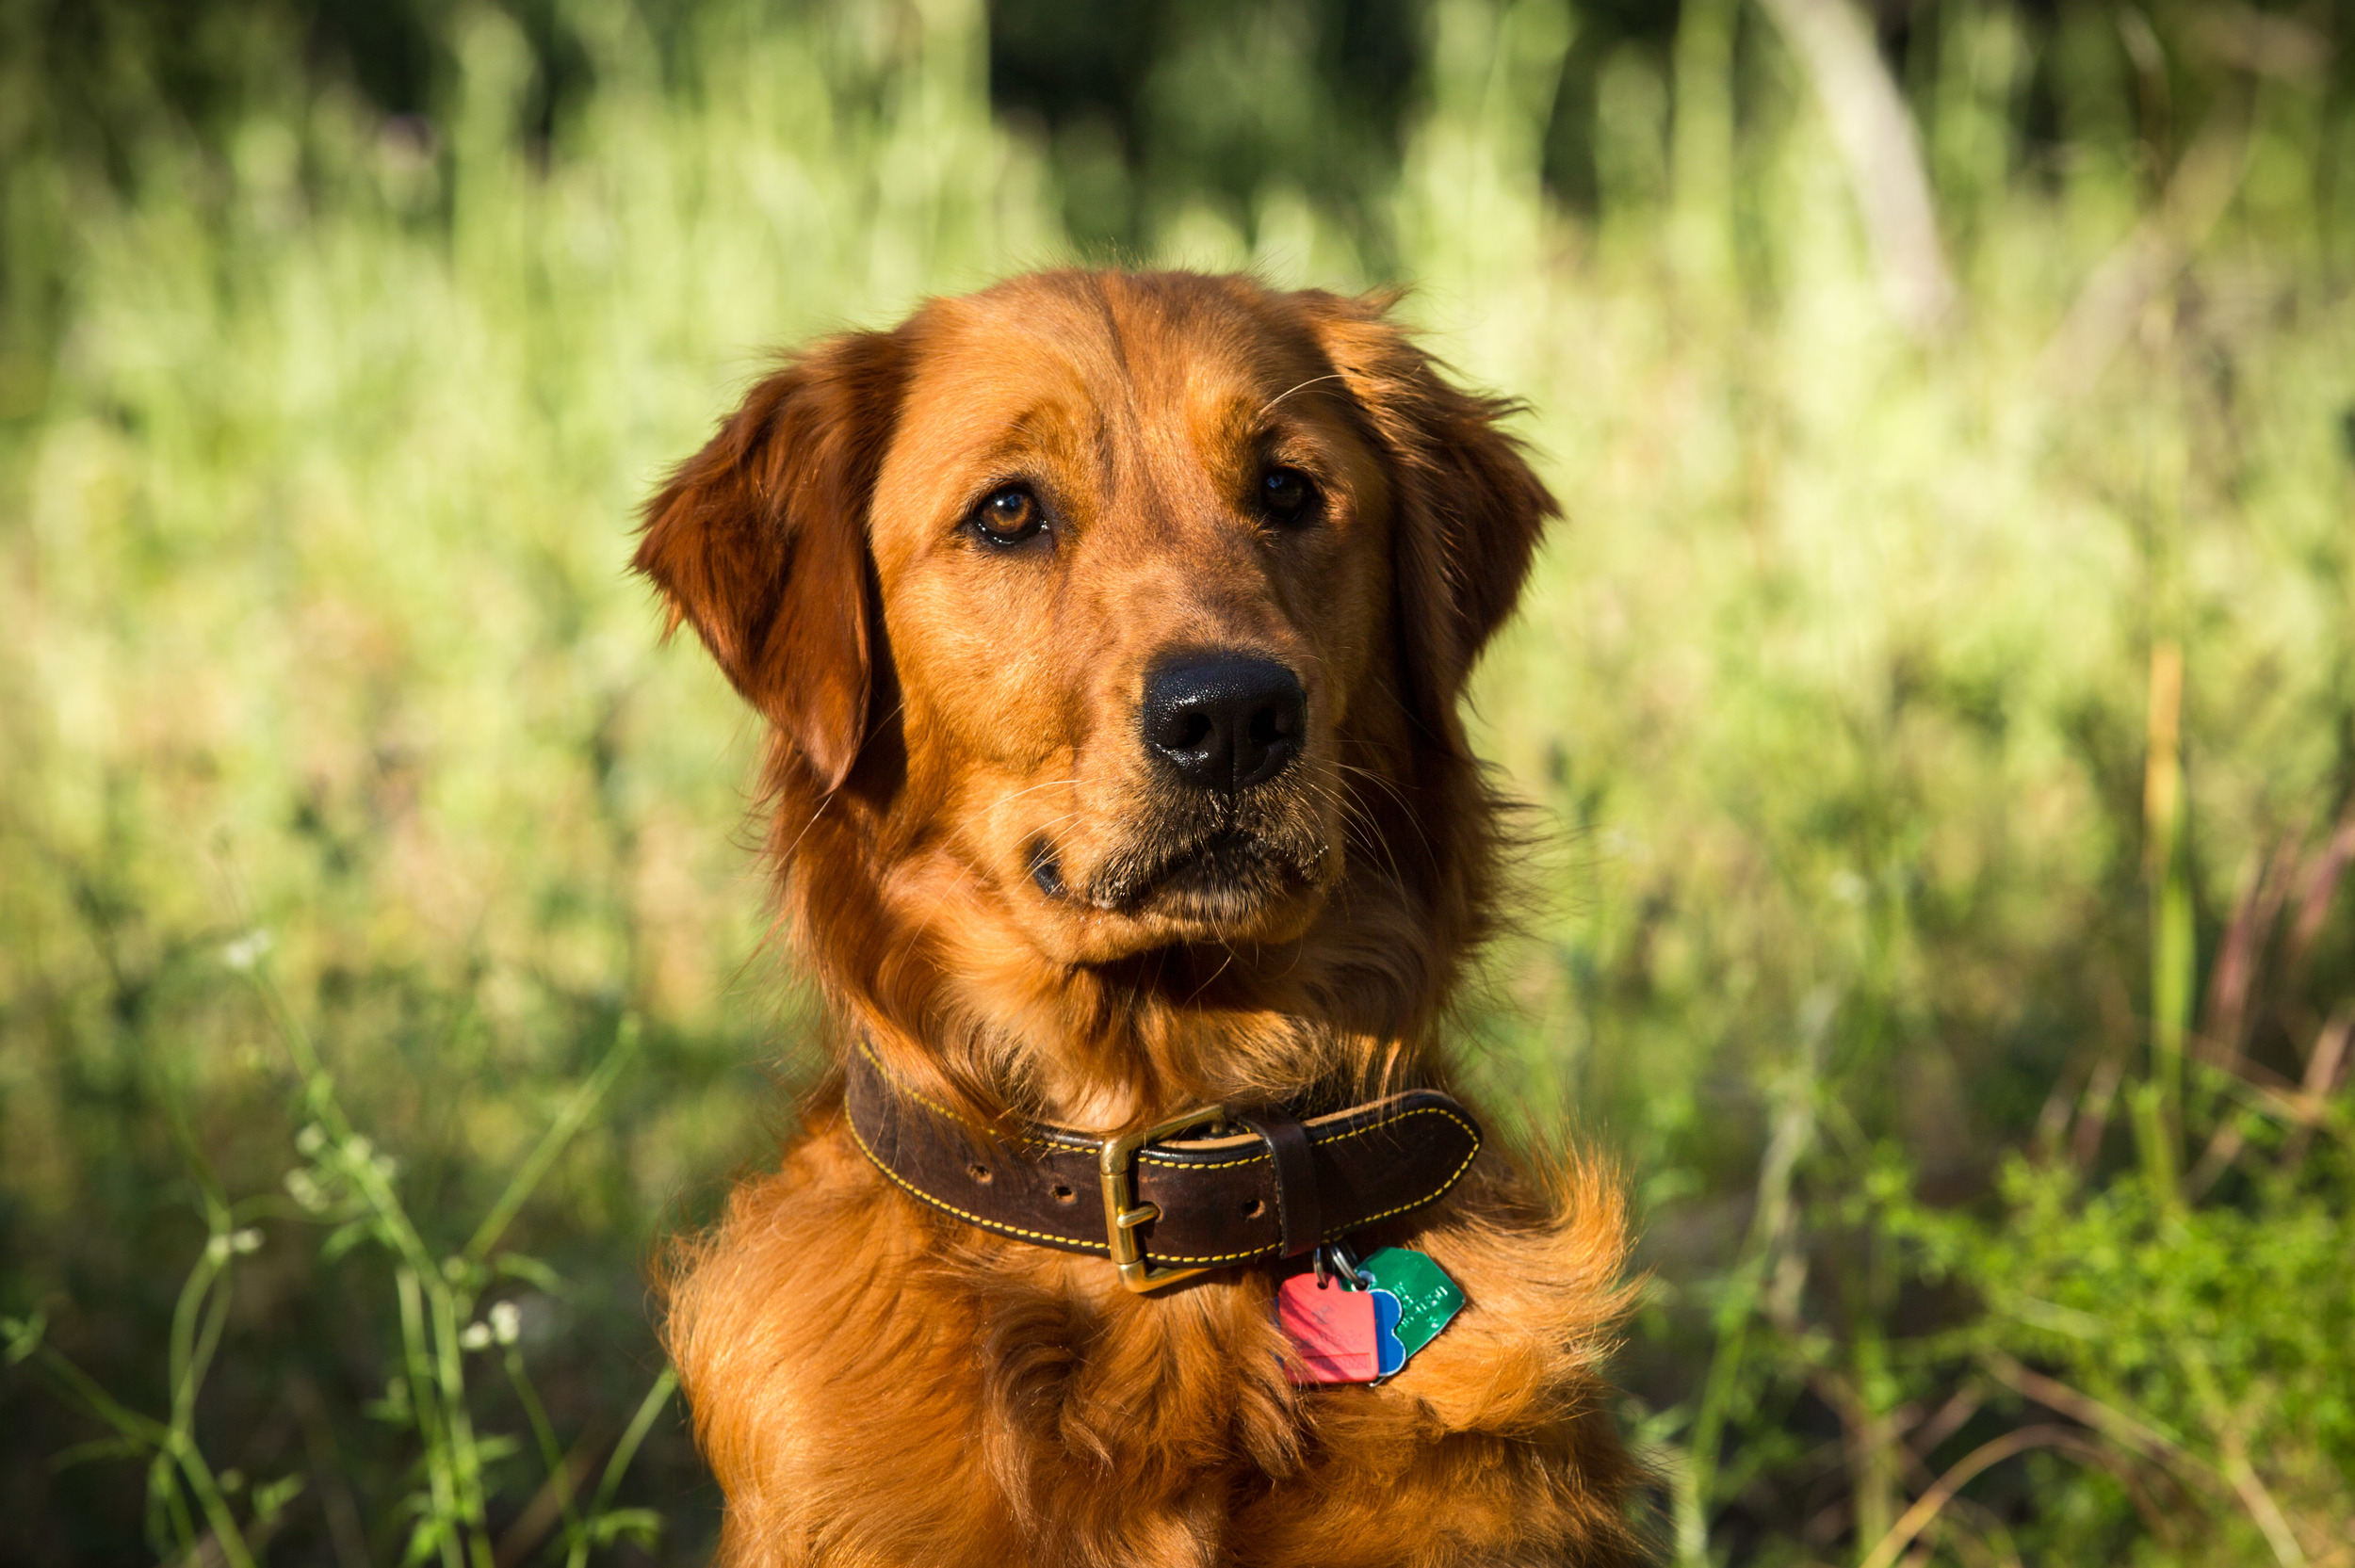 Portrait of dog, Golden Retriever, in park, Lake Anderson Dam Park, Morgan Hill, CA